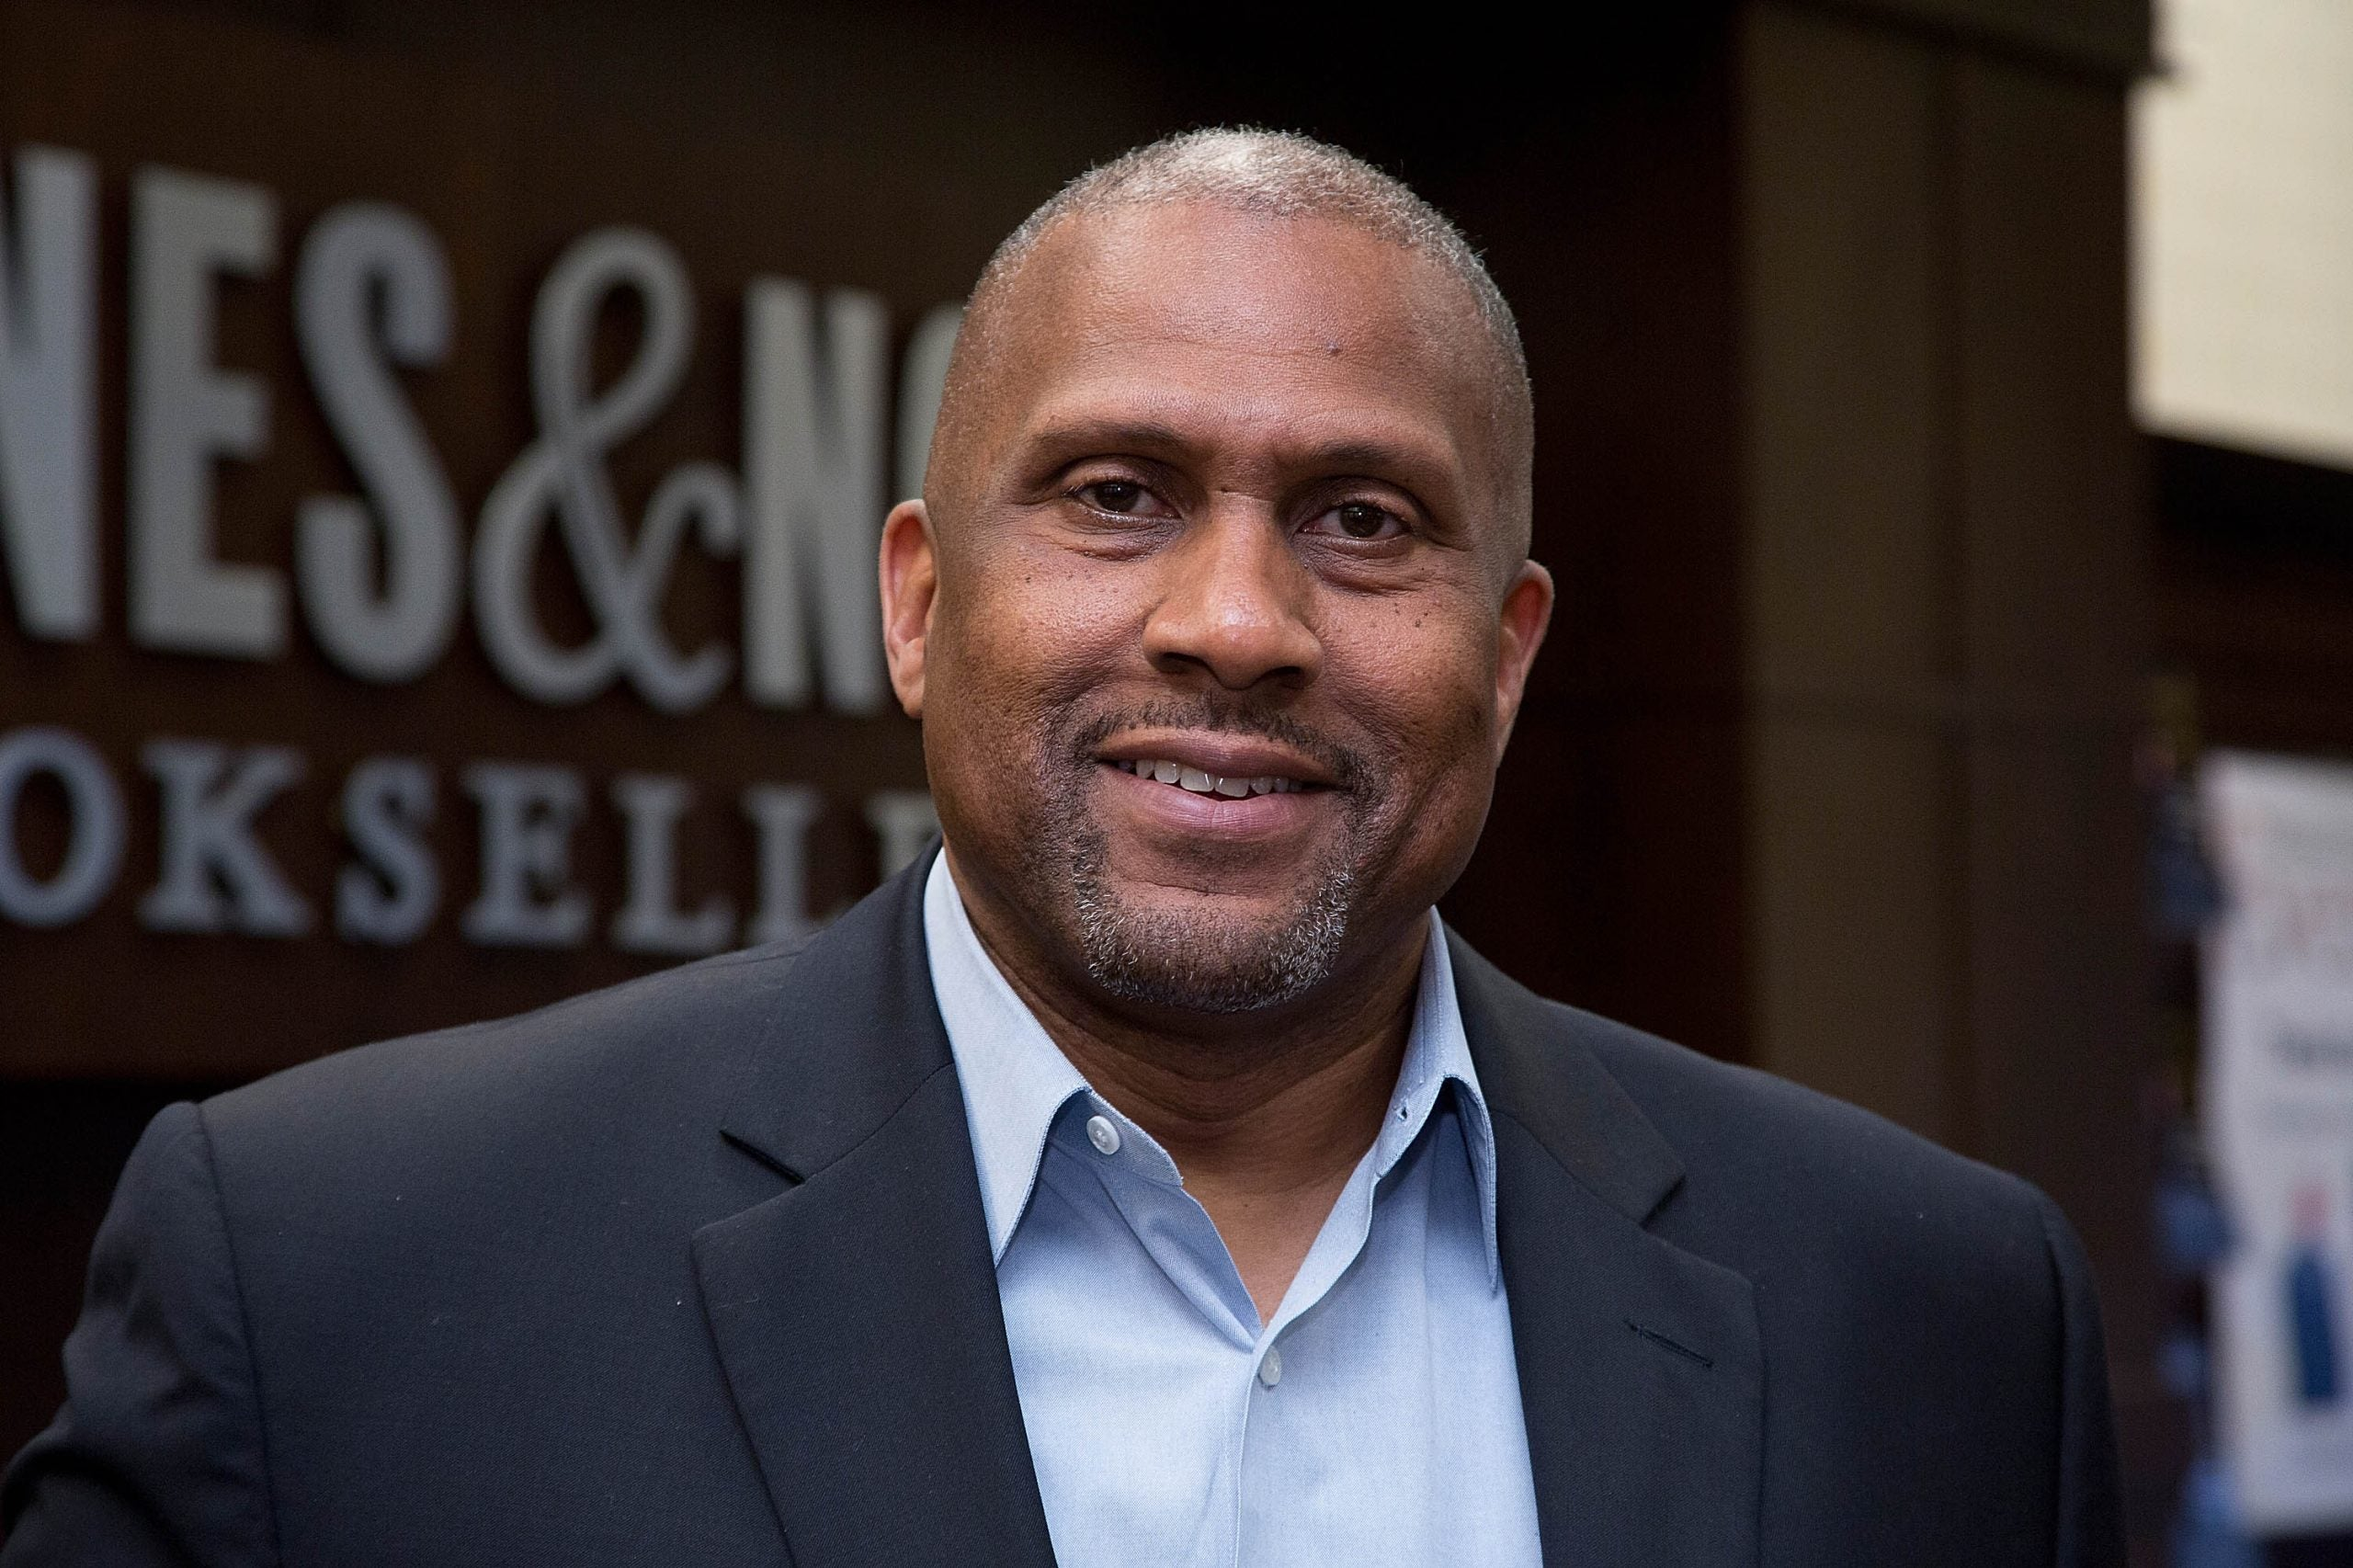 Tavis Smiley Ordered to Pay $2.6 Million To PBS For Alleged Sexual Misconduct